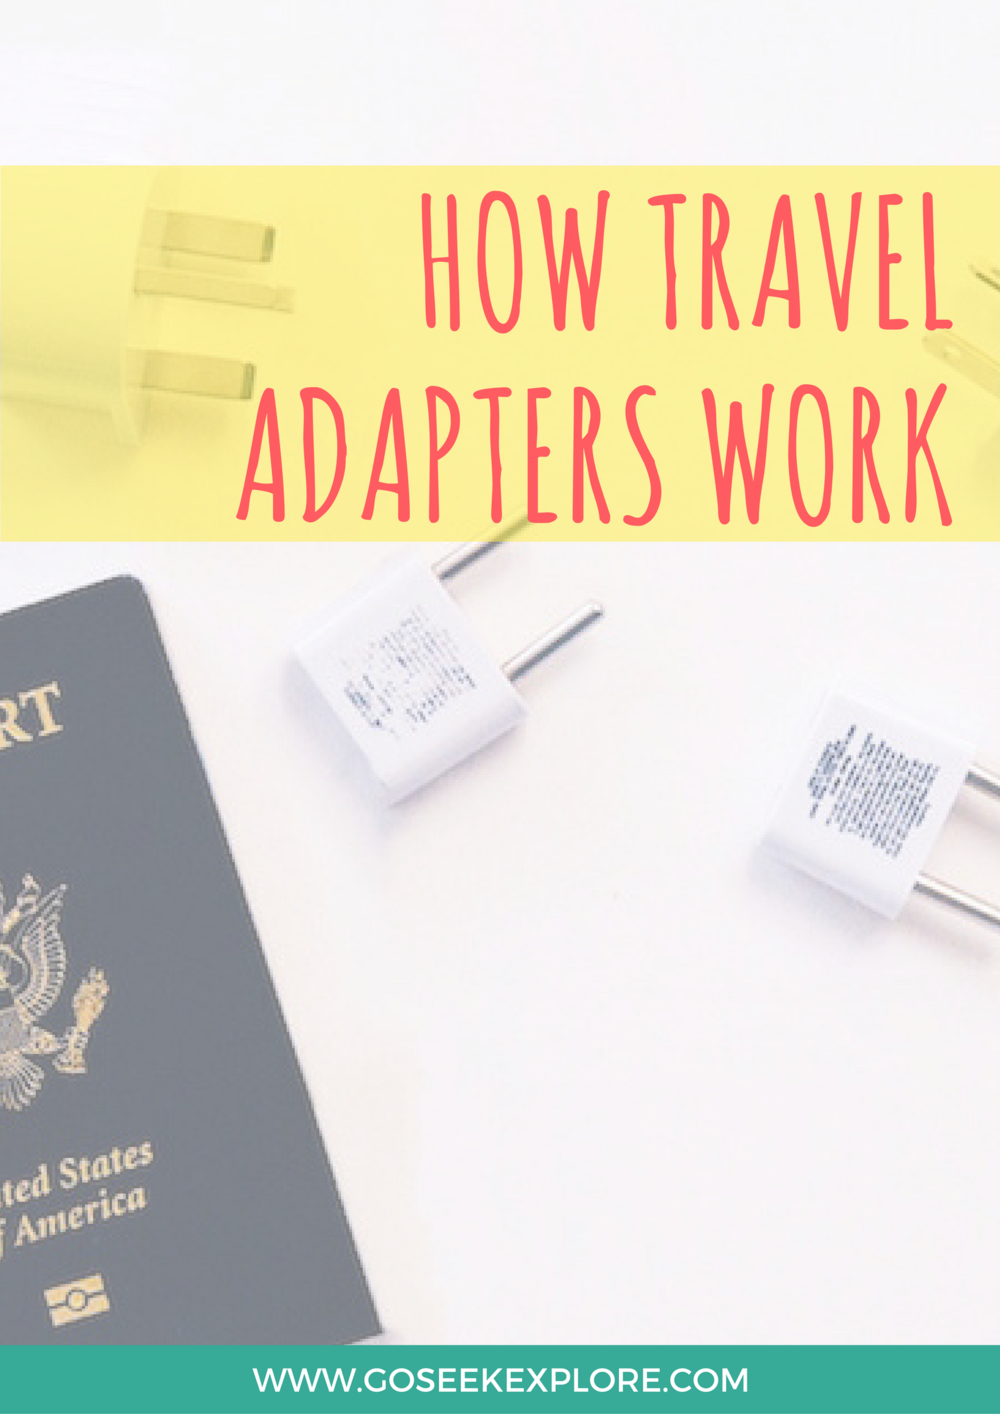 Confused on how travel adapters work so you can use your electronics while traveling internationally? This post and video tutorial goes over exactly what you need to know!